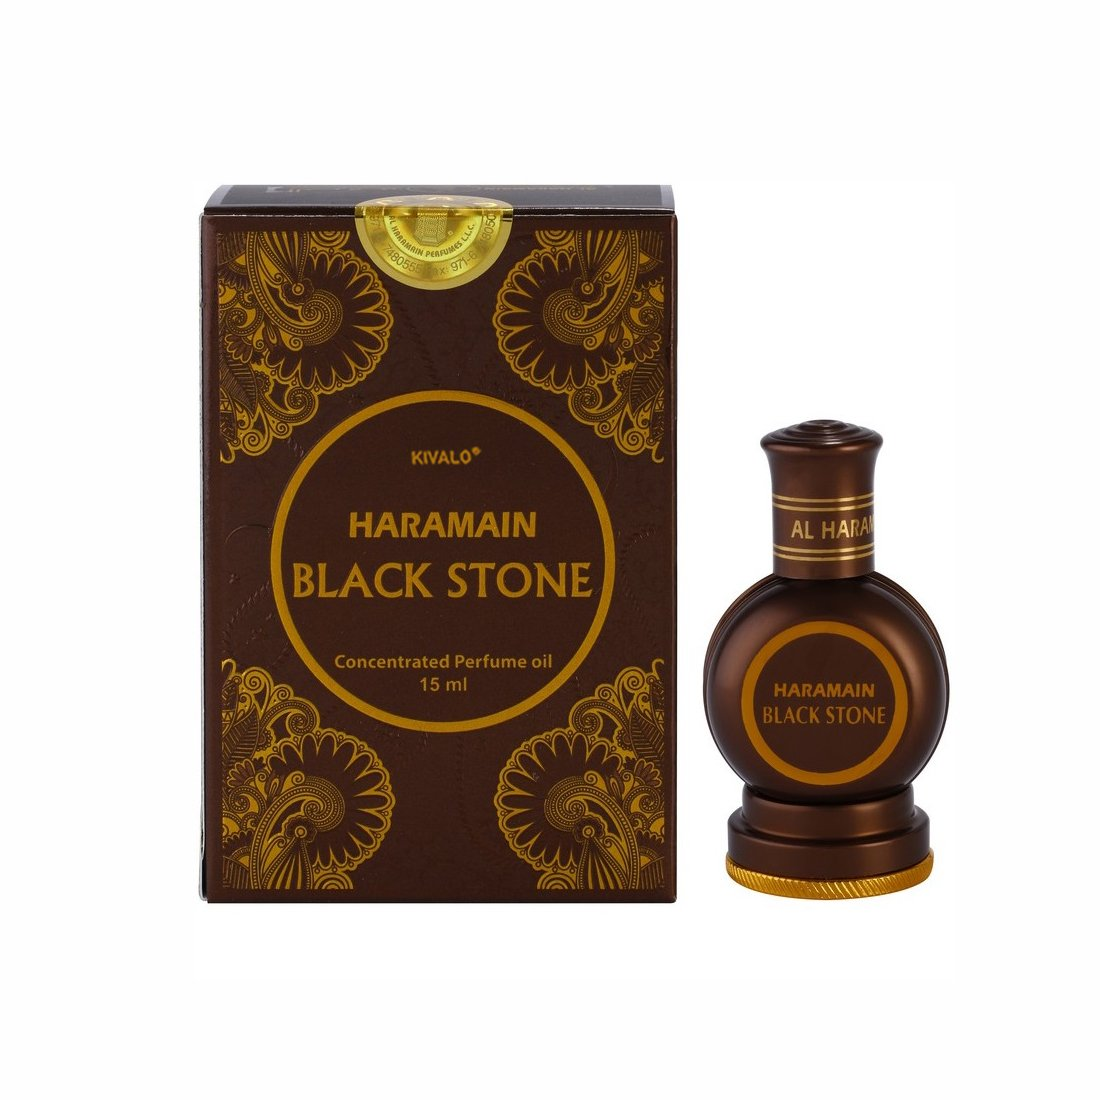 Al Haramain Black Stone Attar - 15ml